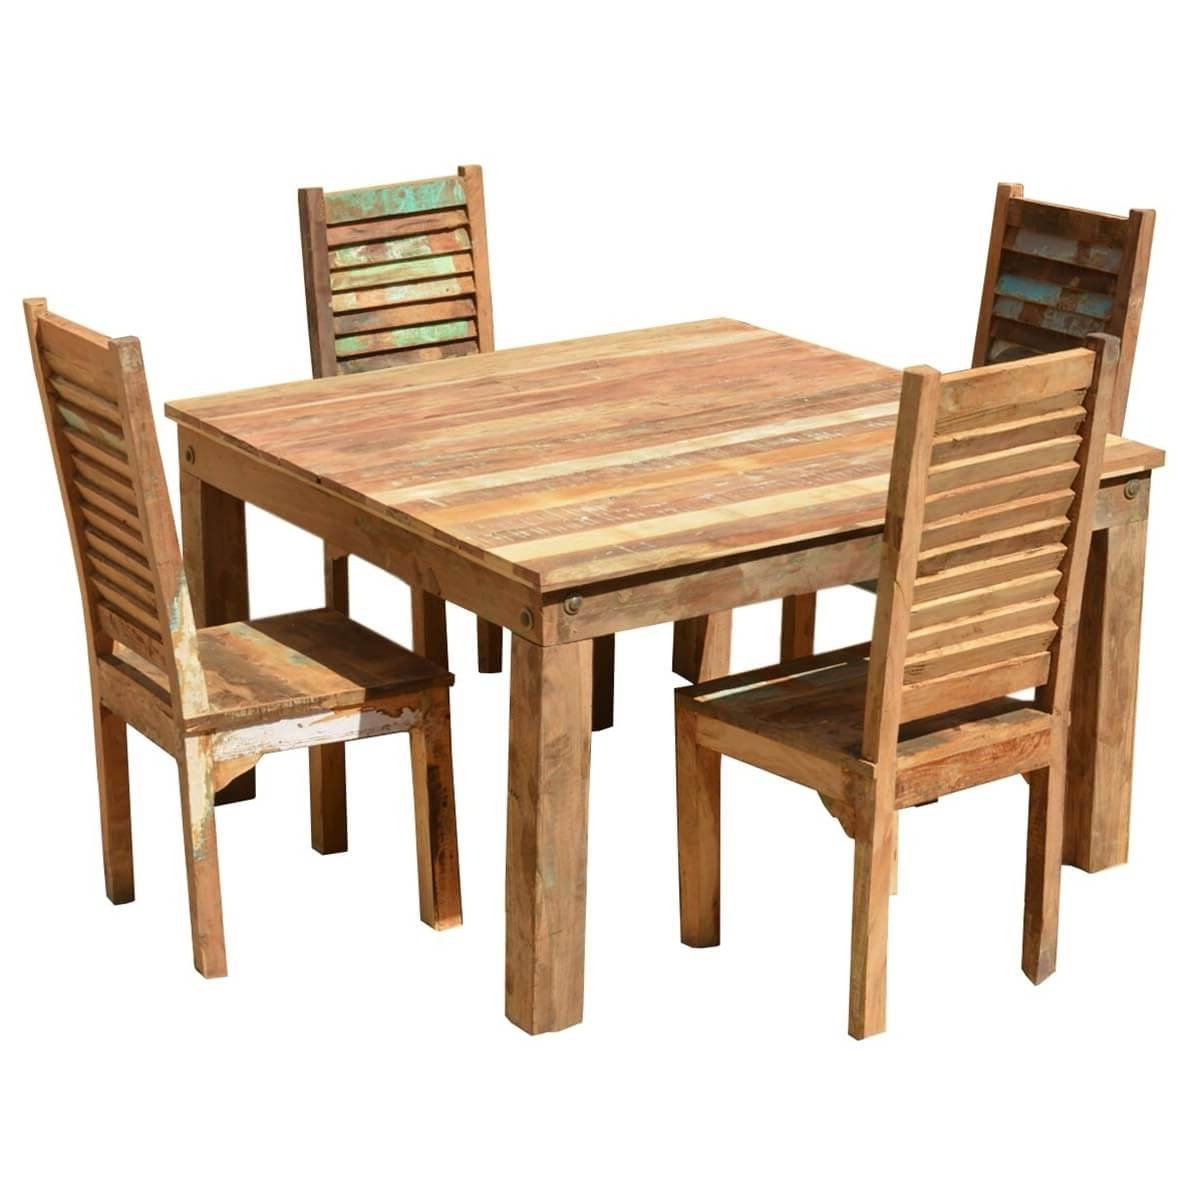 Trendy Cheap Reclaimed Wood Dining Tables For Ohio Reclaimed Wood Furniture Dining Table & Shutter Back Chairs Set (View 17 of 25)